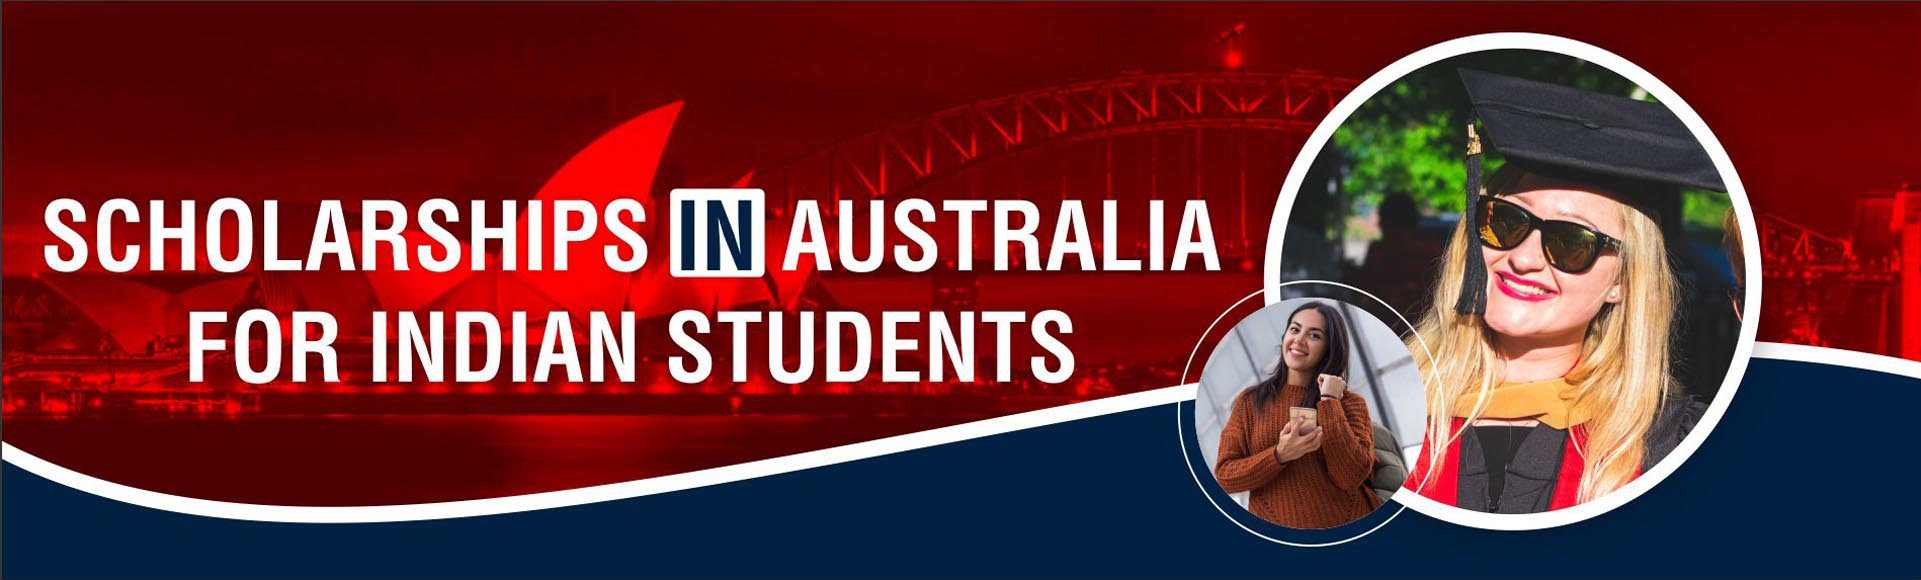 Scholarship in Australia for Indian students